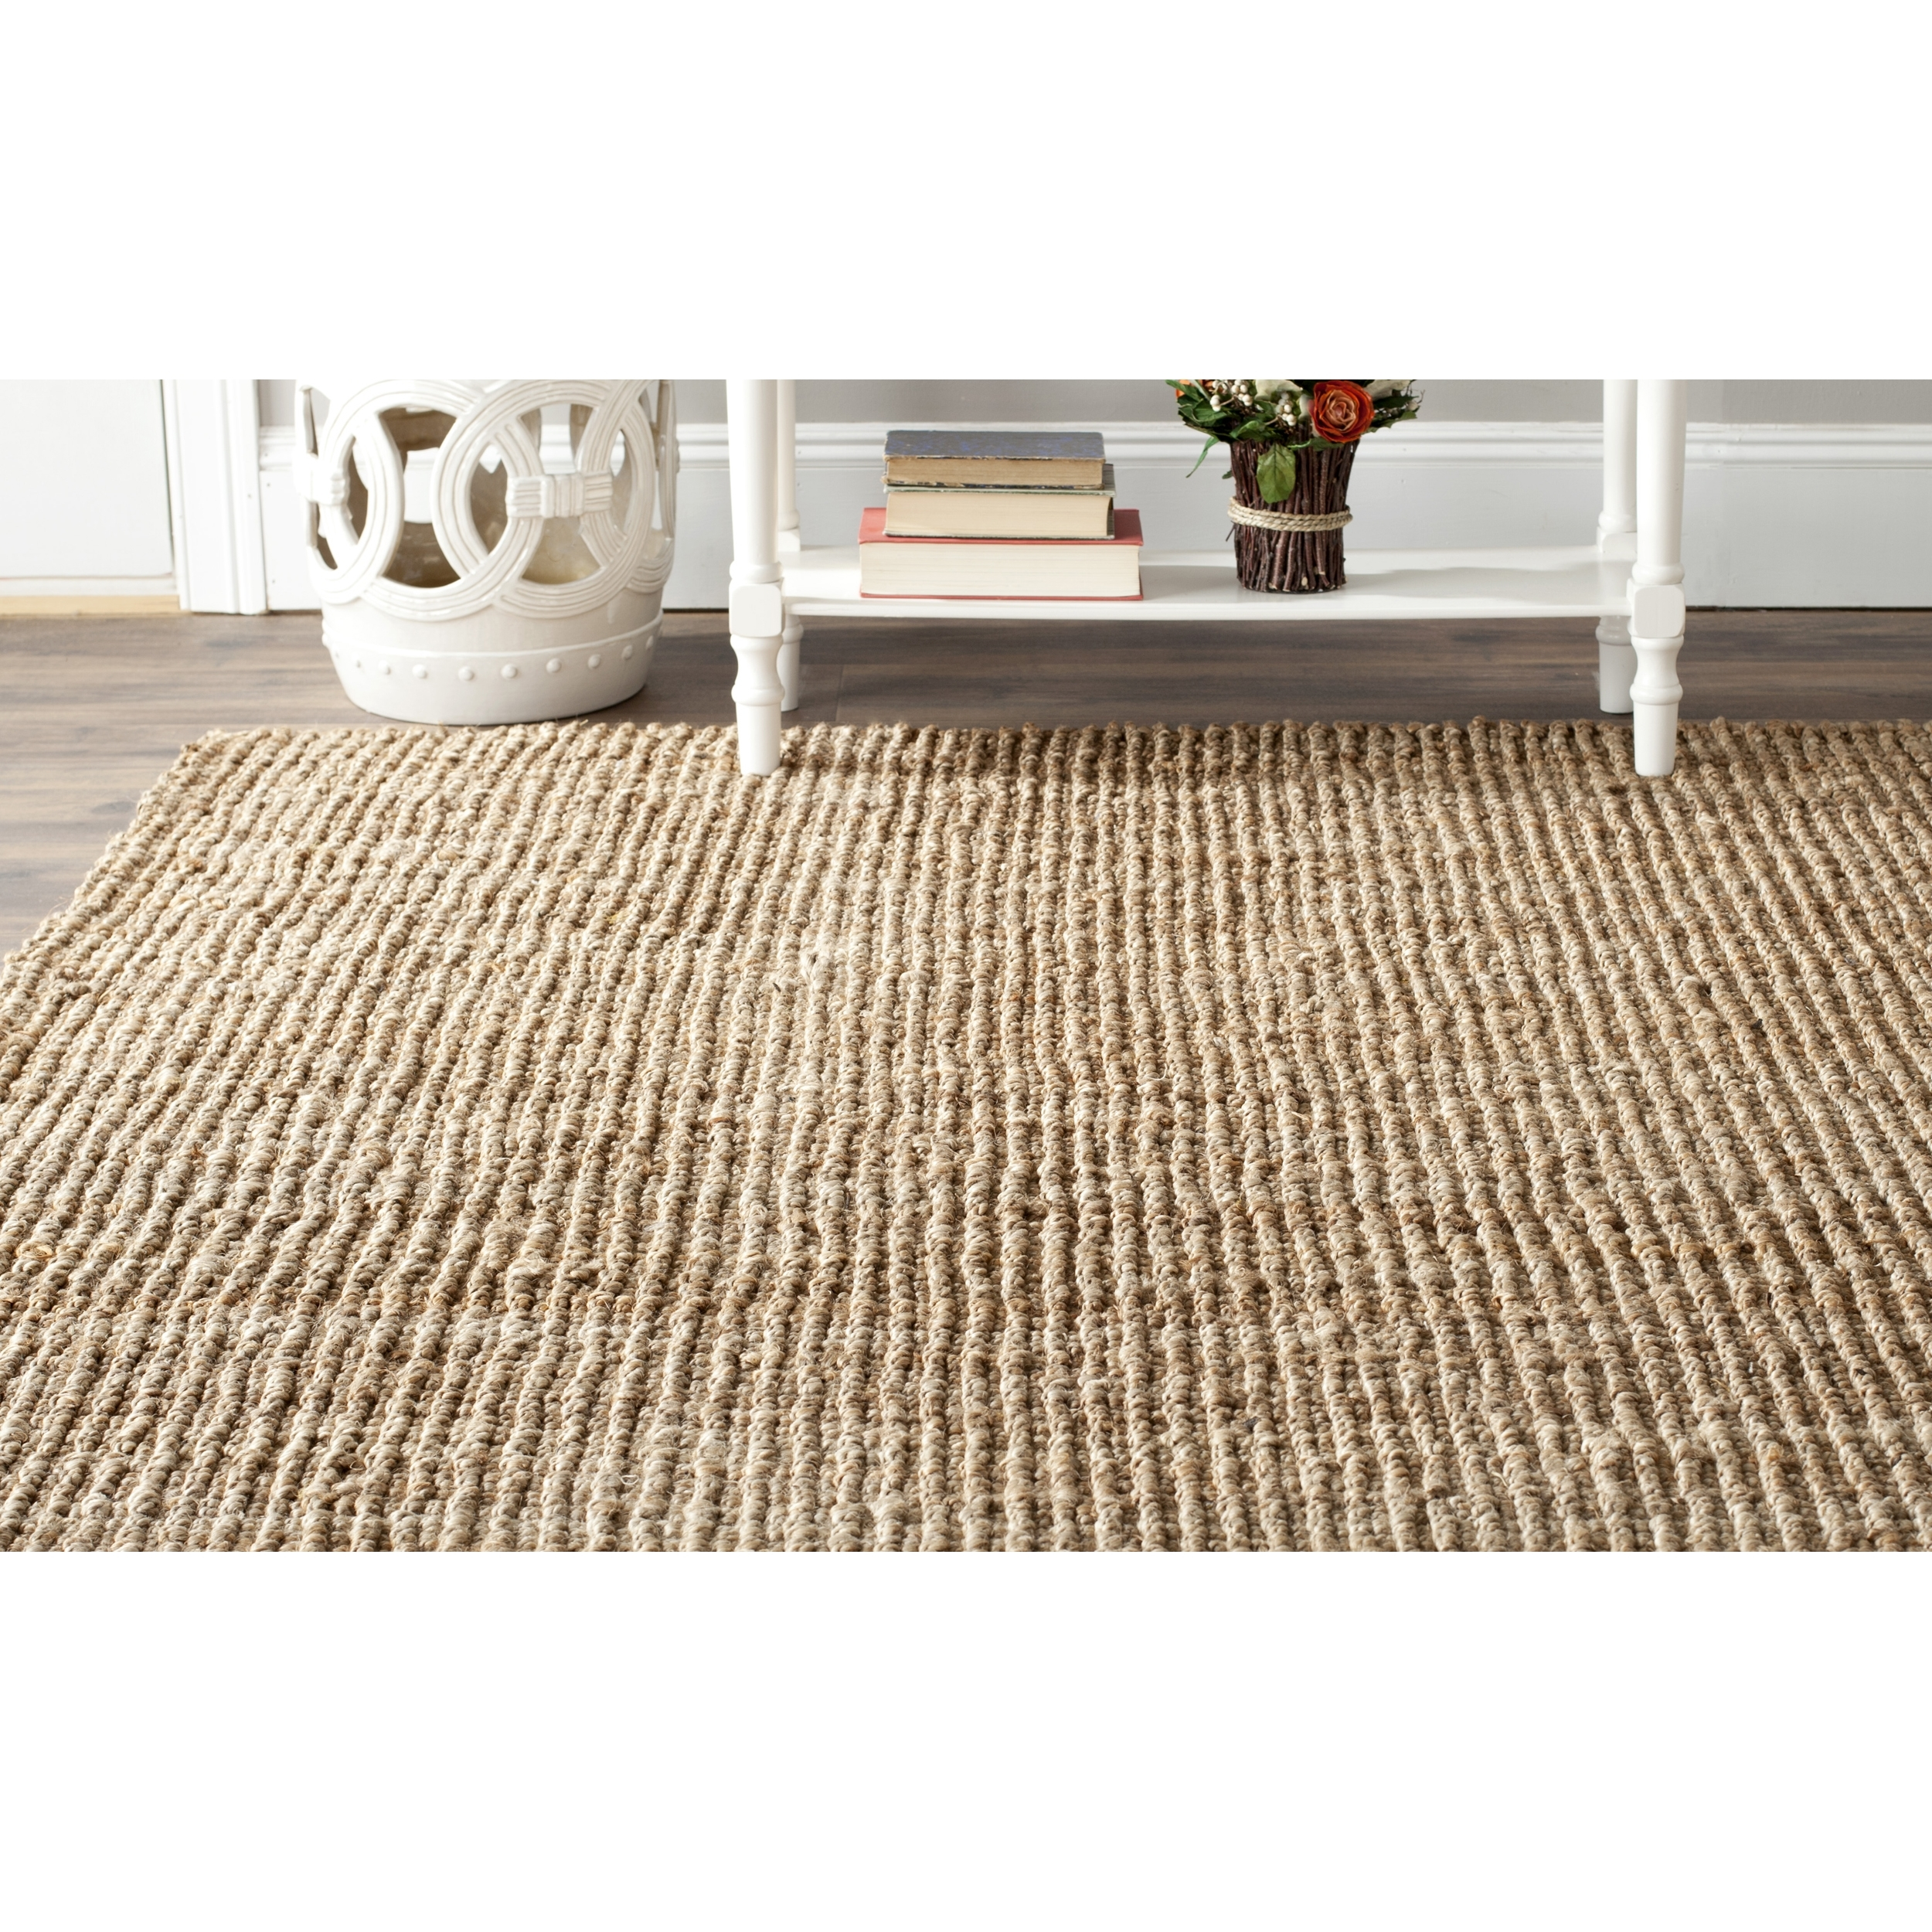 Natural Fibre Rugs Design Ideas 12158 Intended For Natural Rugs (Image 5 of 15)